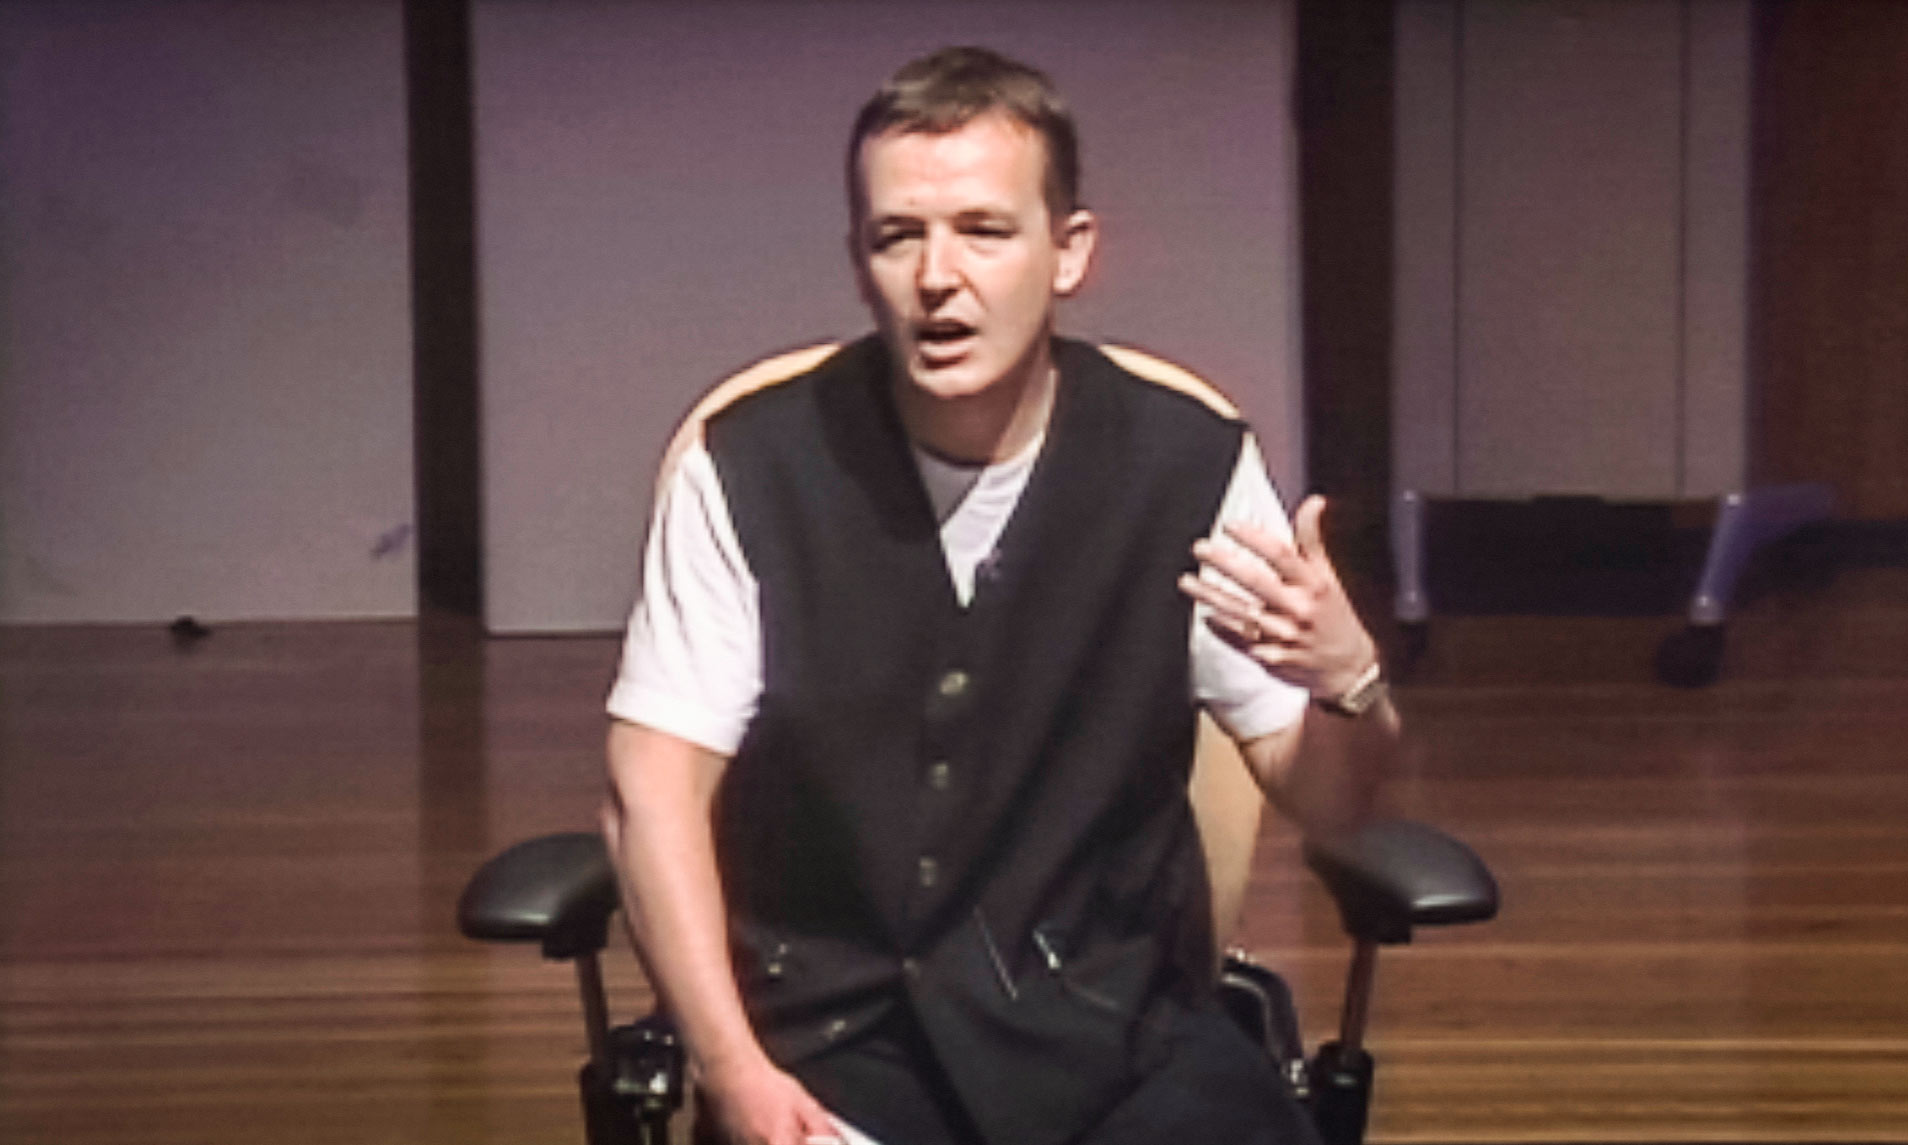 Too nervous to stand, Chris Anderson addresses the 2002 TED audience from a chair, ultimately inspiring them to follow his lead in forging TED's next chapter. Video still courtesy of TED.